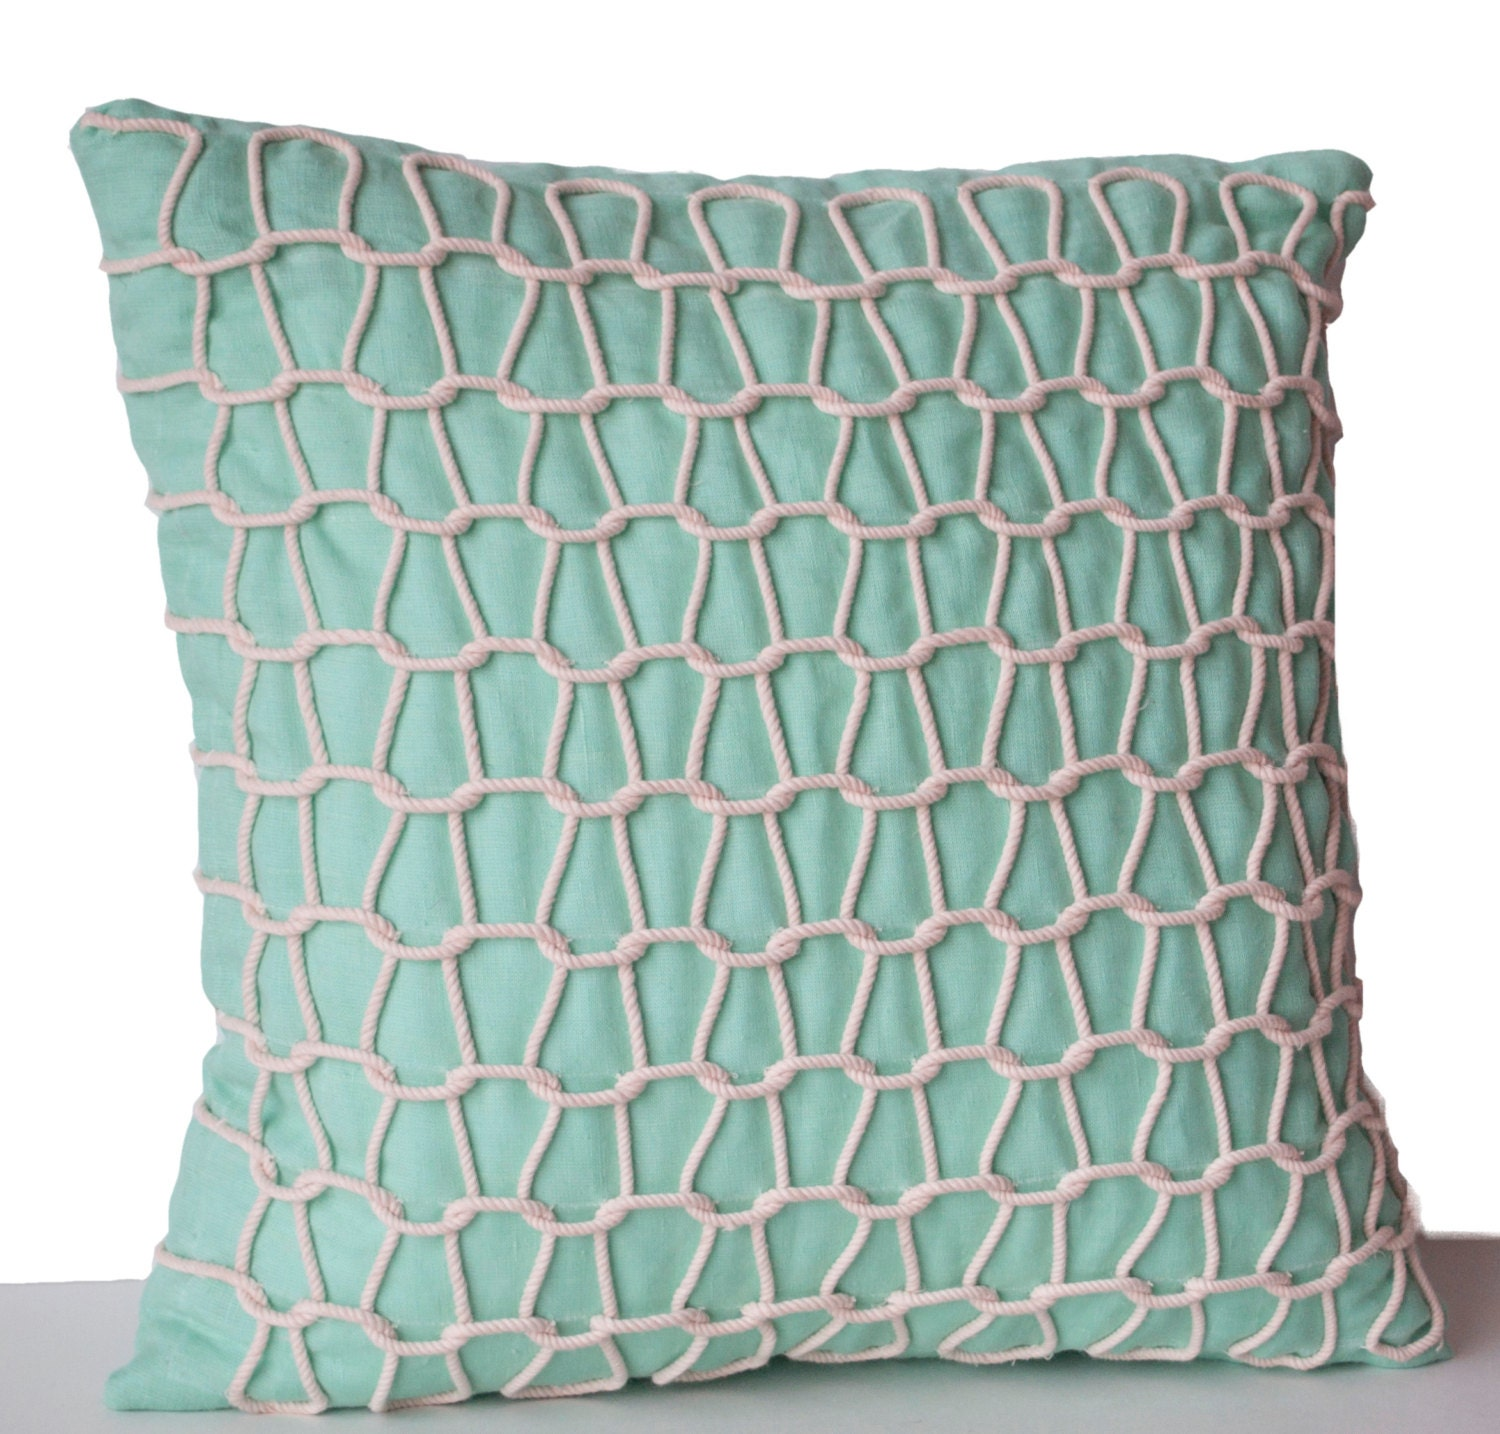 Nautical Pillow Teal Silk Throw Pillows Beach Decor Hand